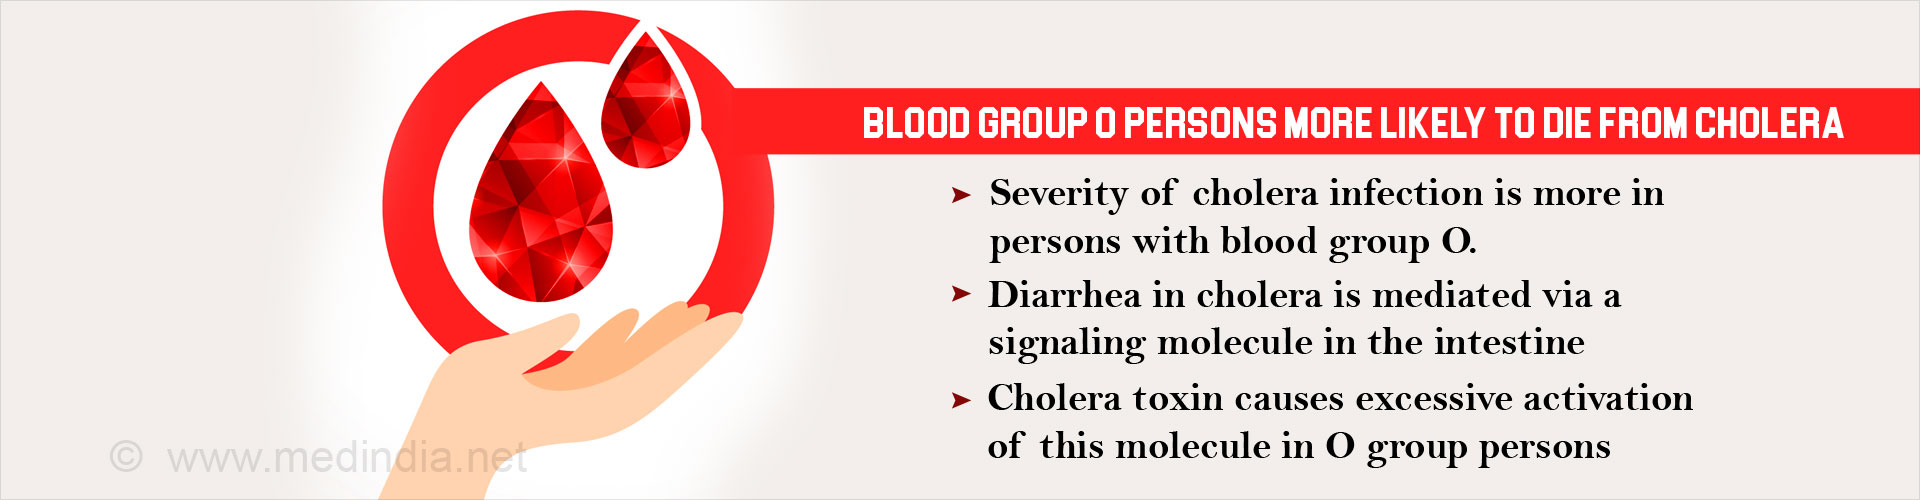 Reason For More Cholera Deaths In O Blood Group People - Science May Have The Answer